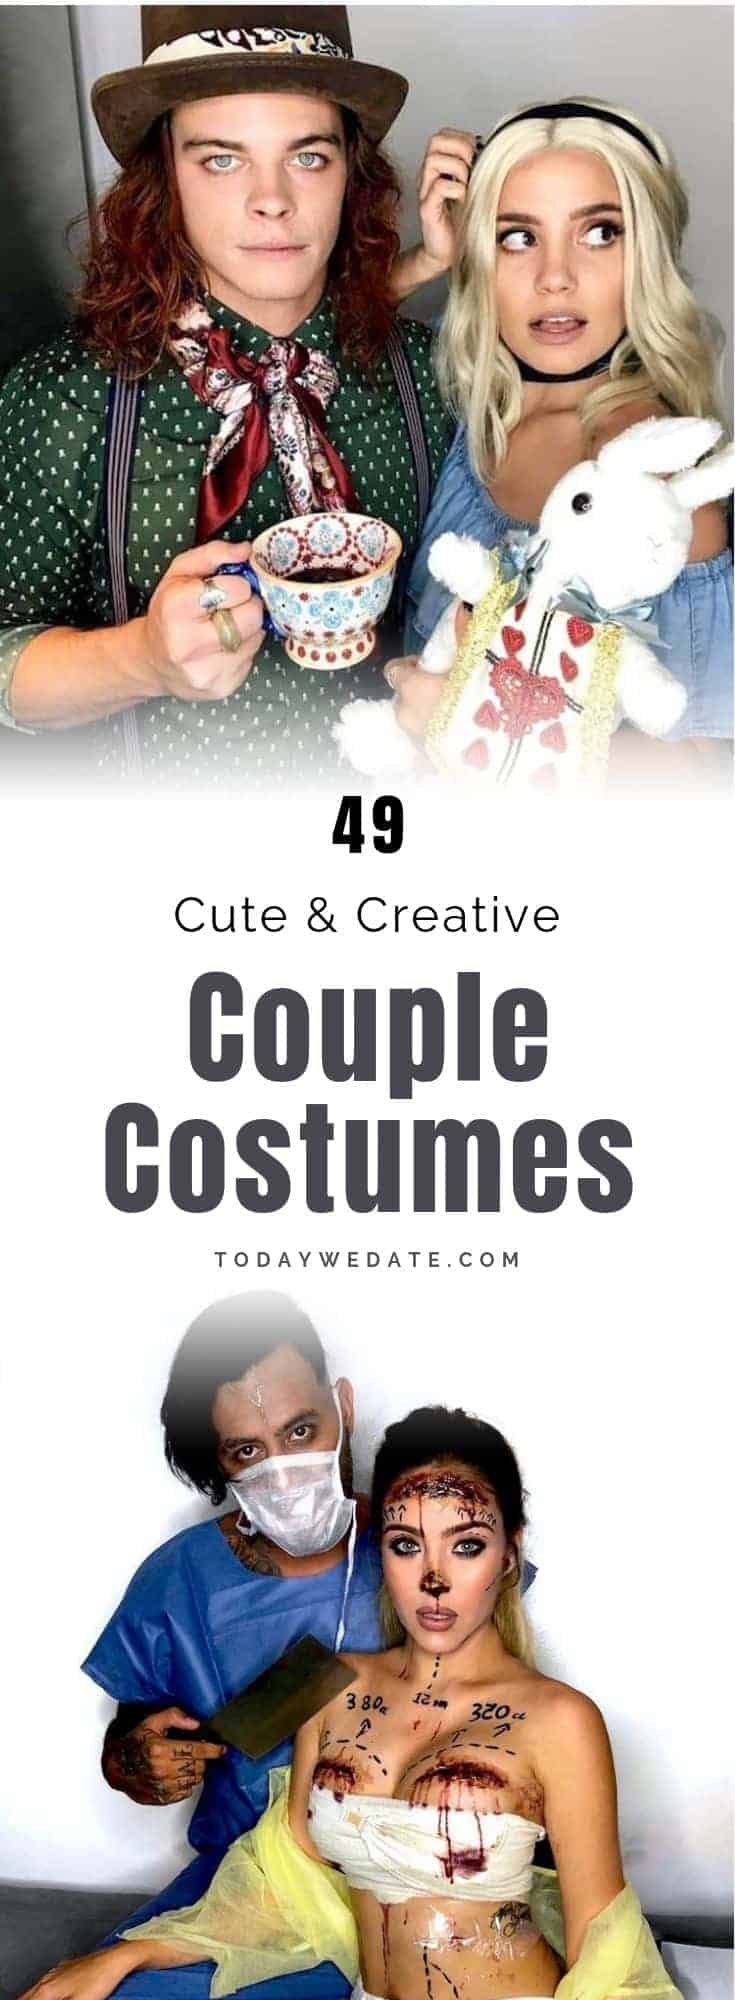 49-Cute-Creative-Couple-Costumes-TODAYWEDATE.COM